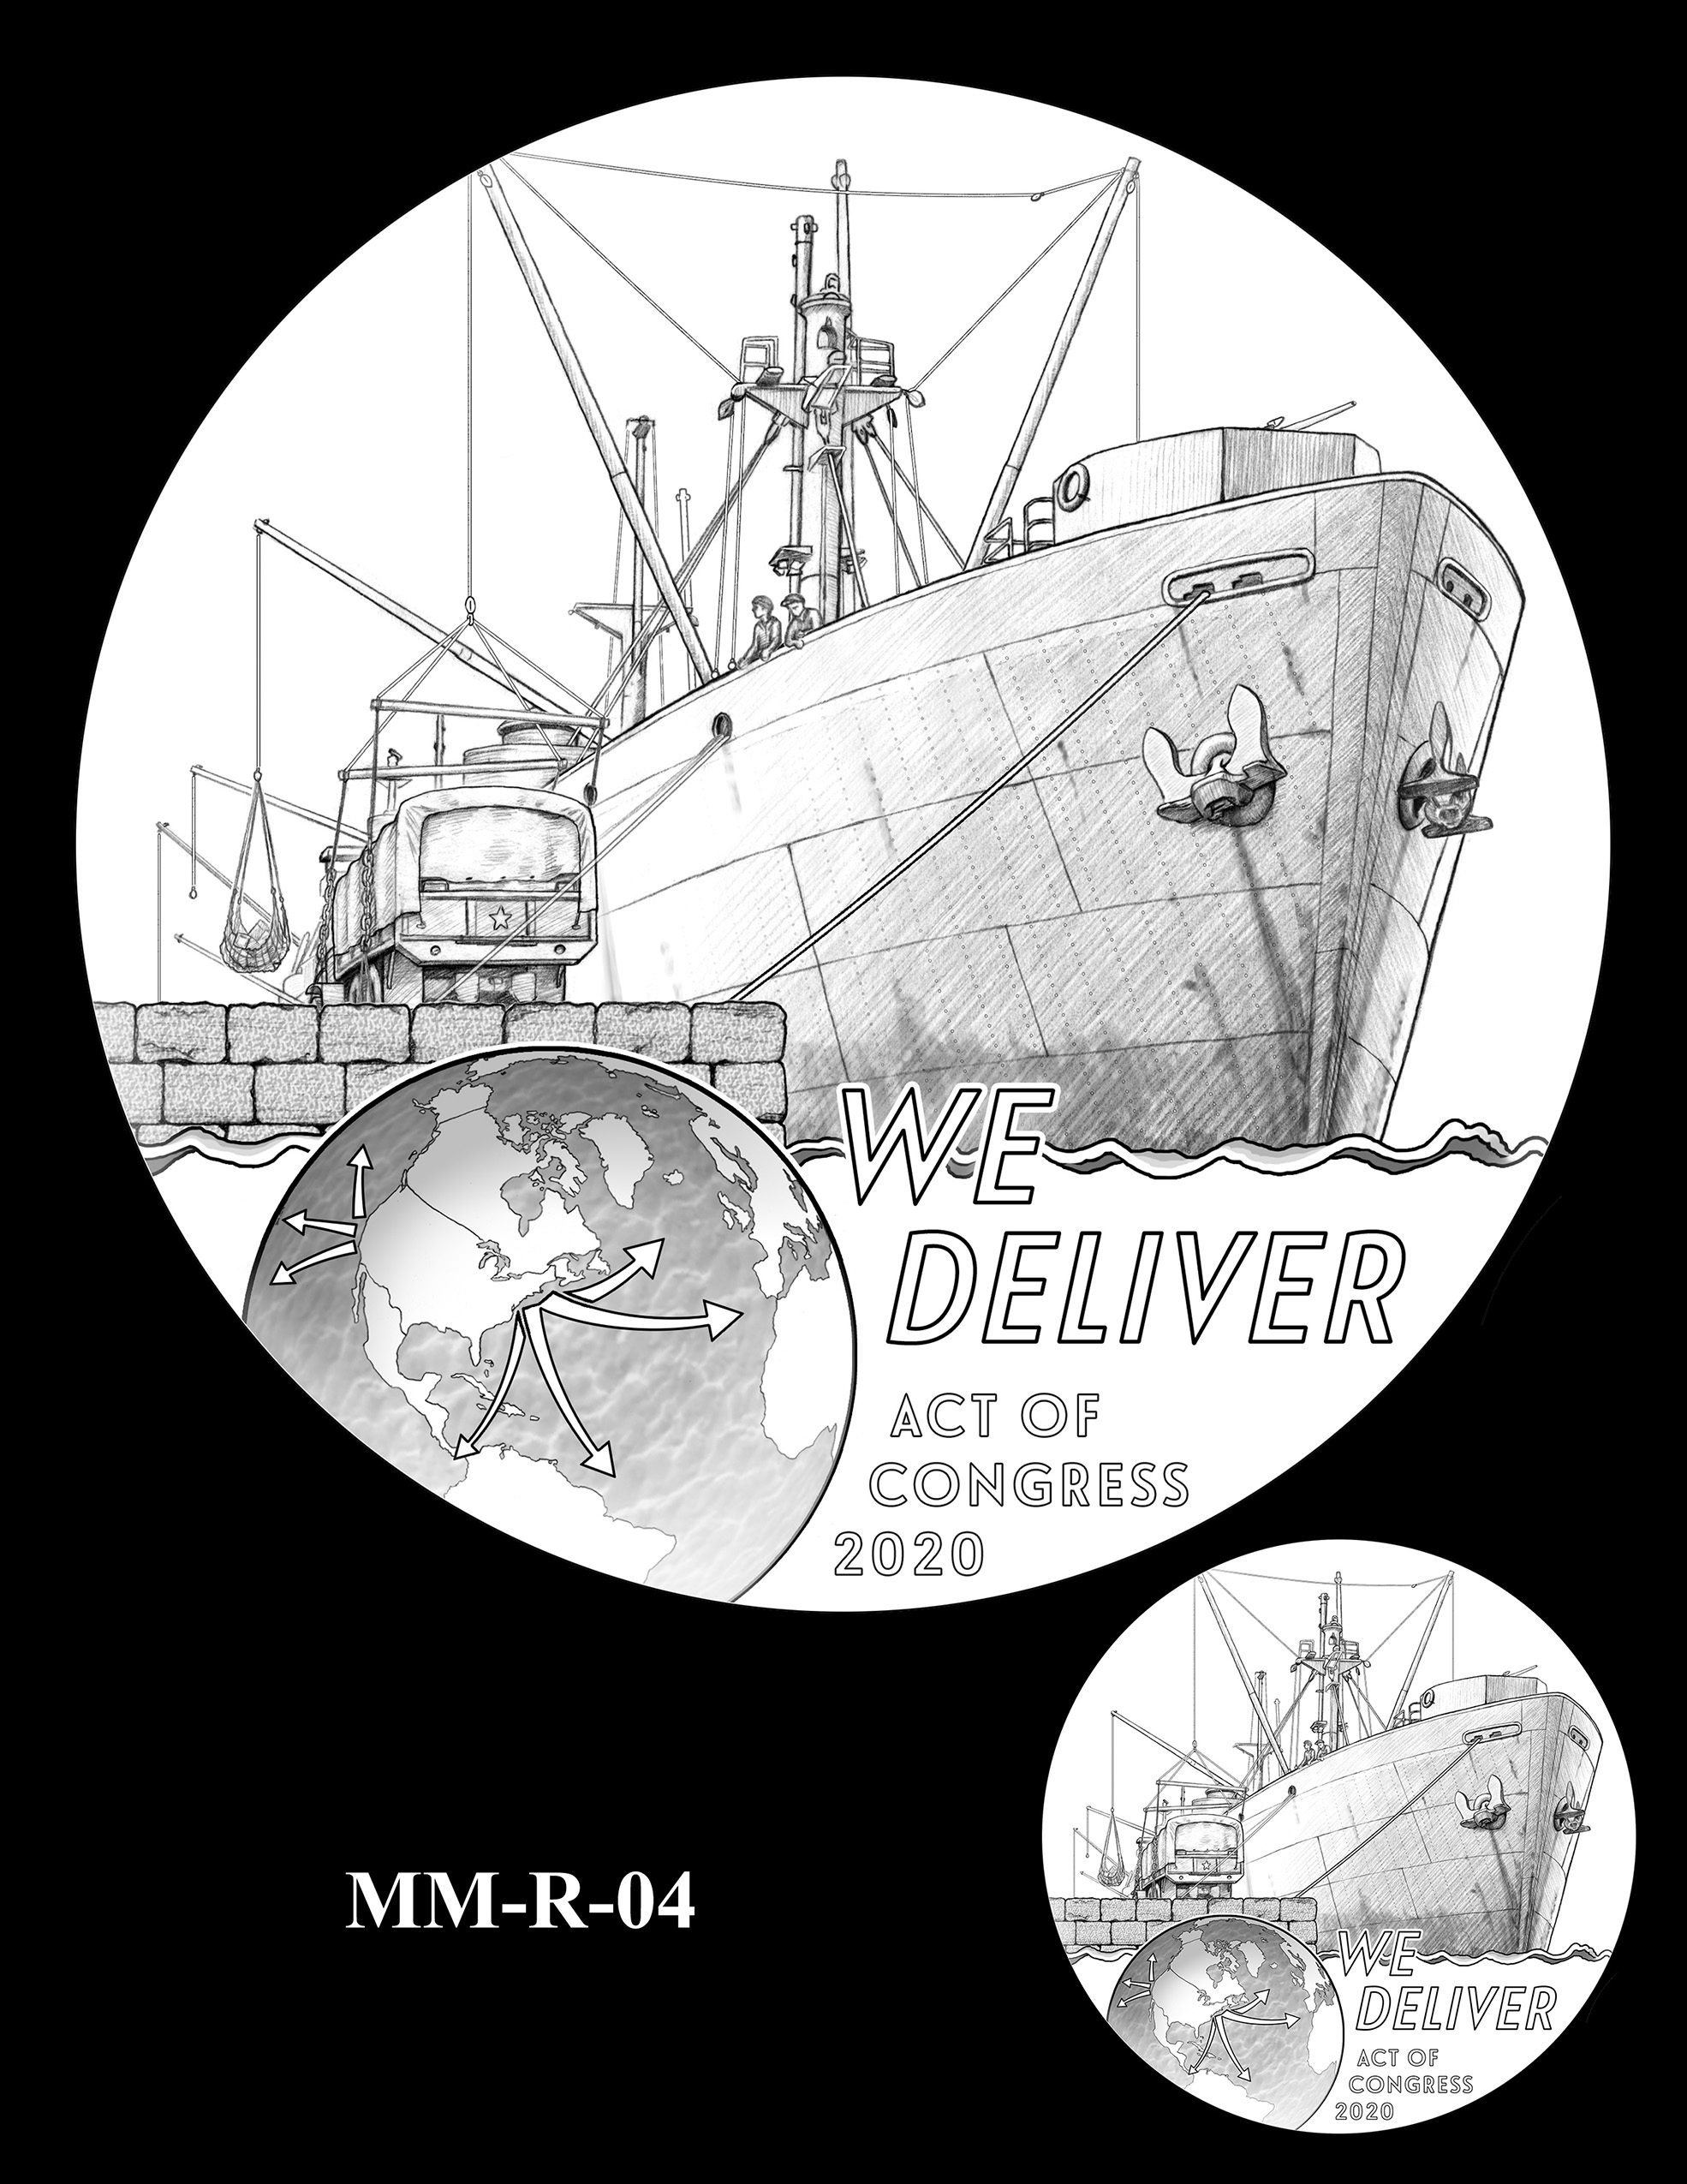 MM-R-04 -- Merchant Mariners of World War II Congressional Gold Medal